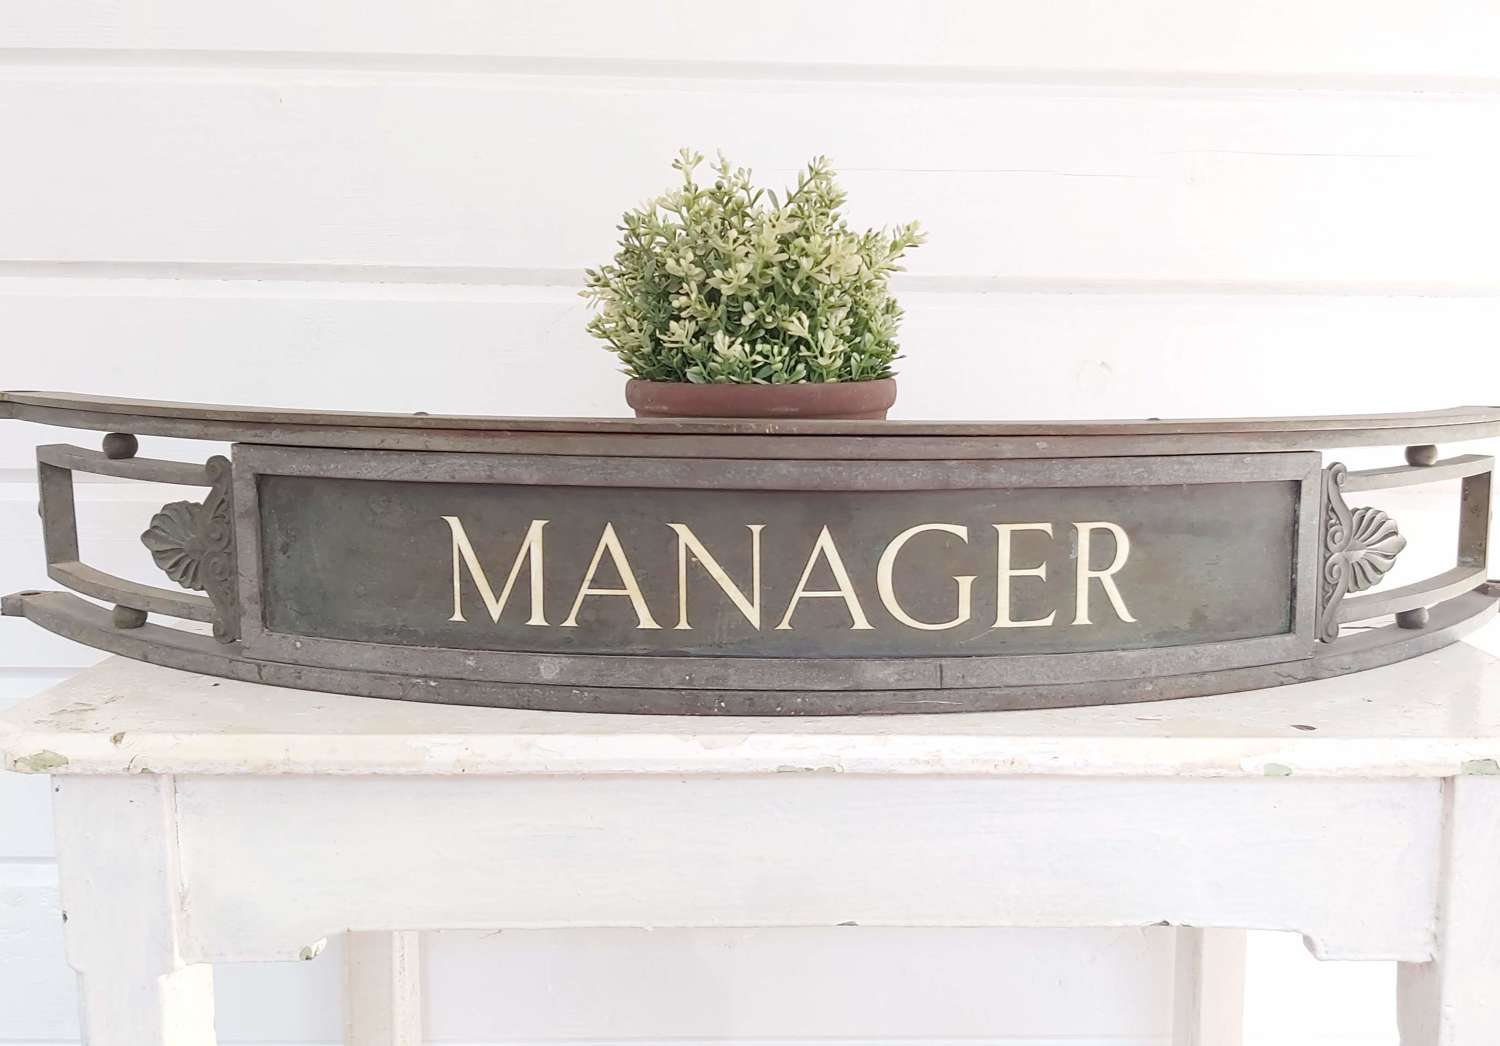 Early 20th century Bank Manager sign